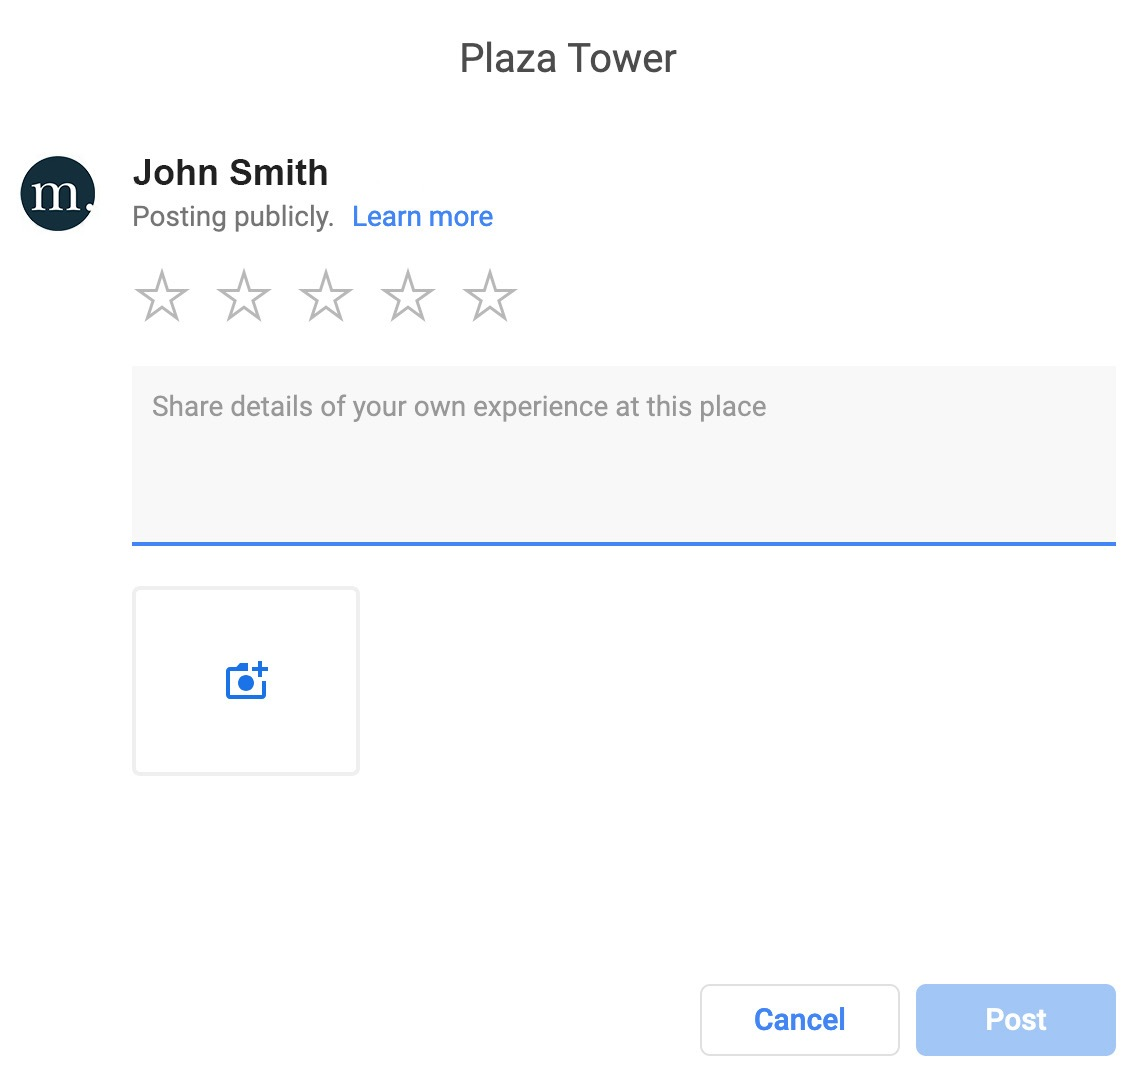 plaza tower seo google my business response